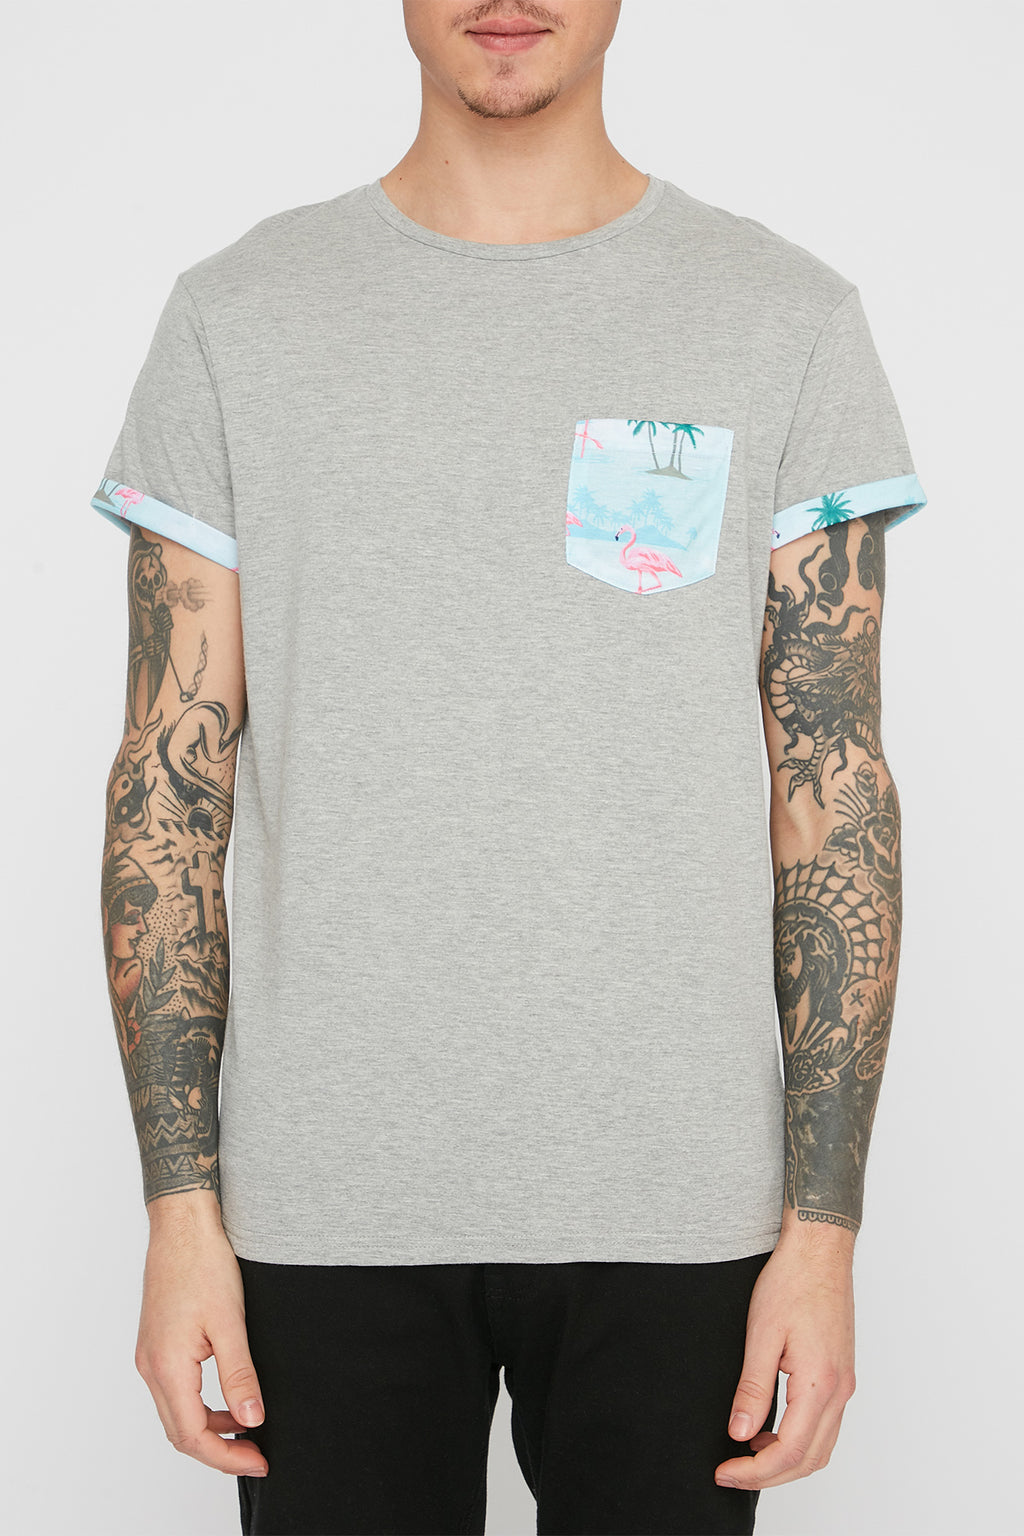 Zoo York Mens Flamingo and Floral Pocket Tees